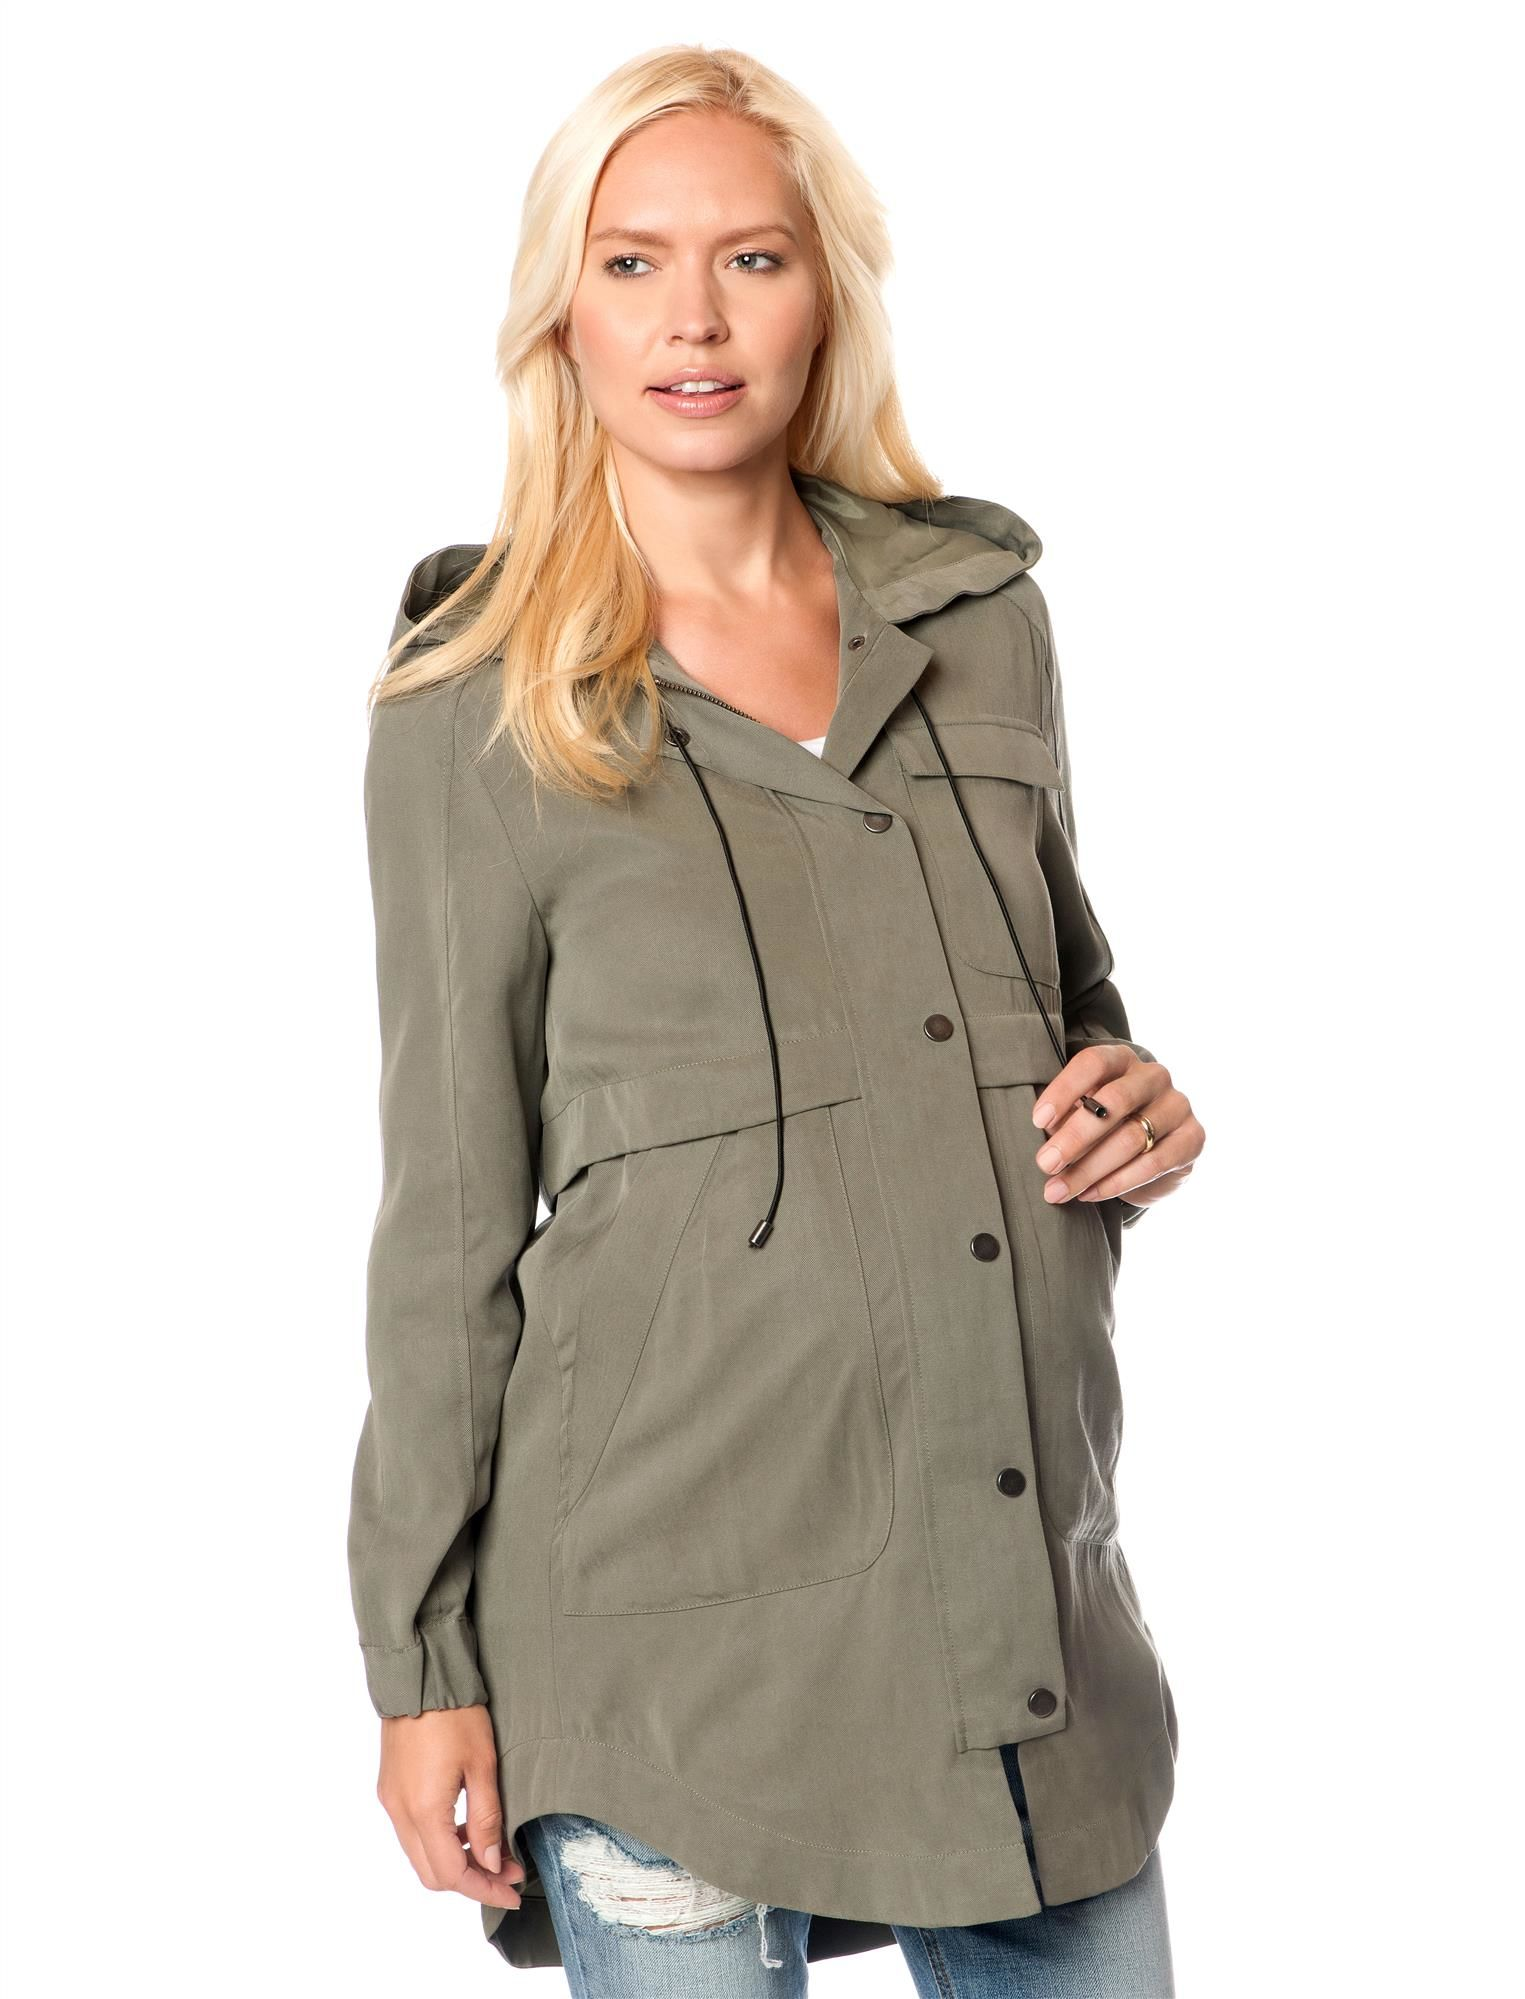 Burlington Coat Factory Clothing | Target Maternity Jacket | Maternity Jackets